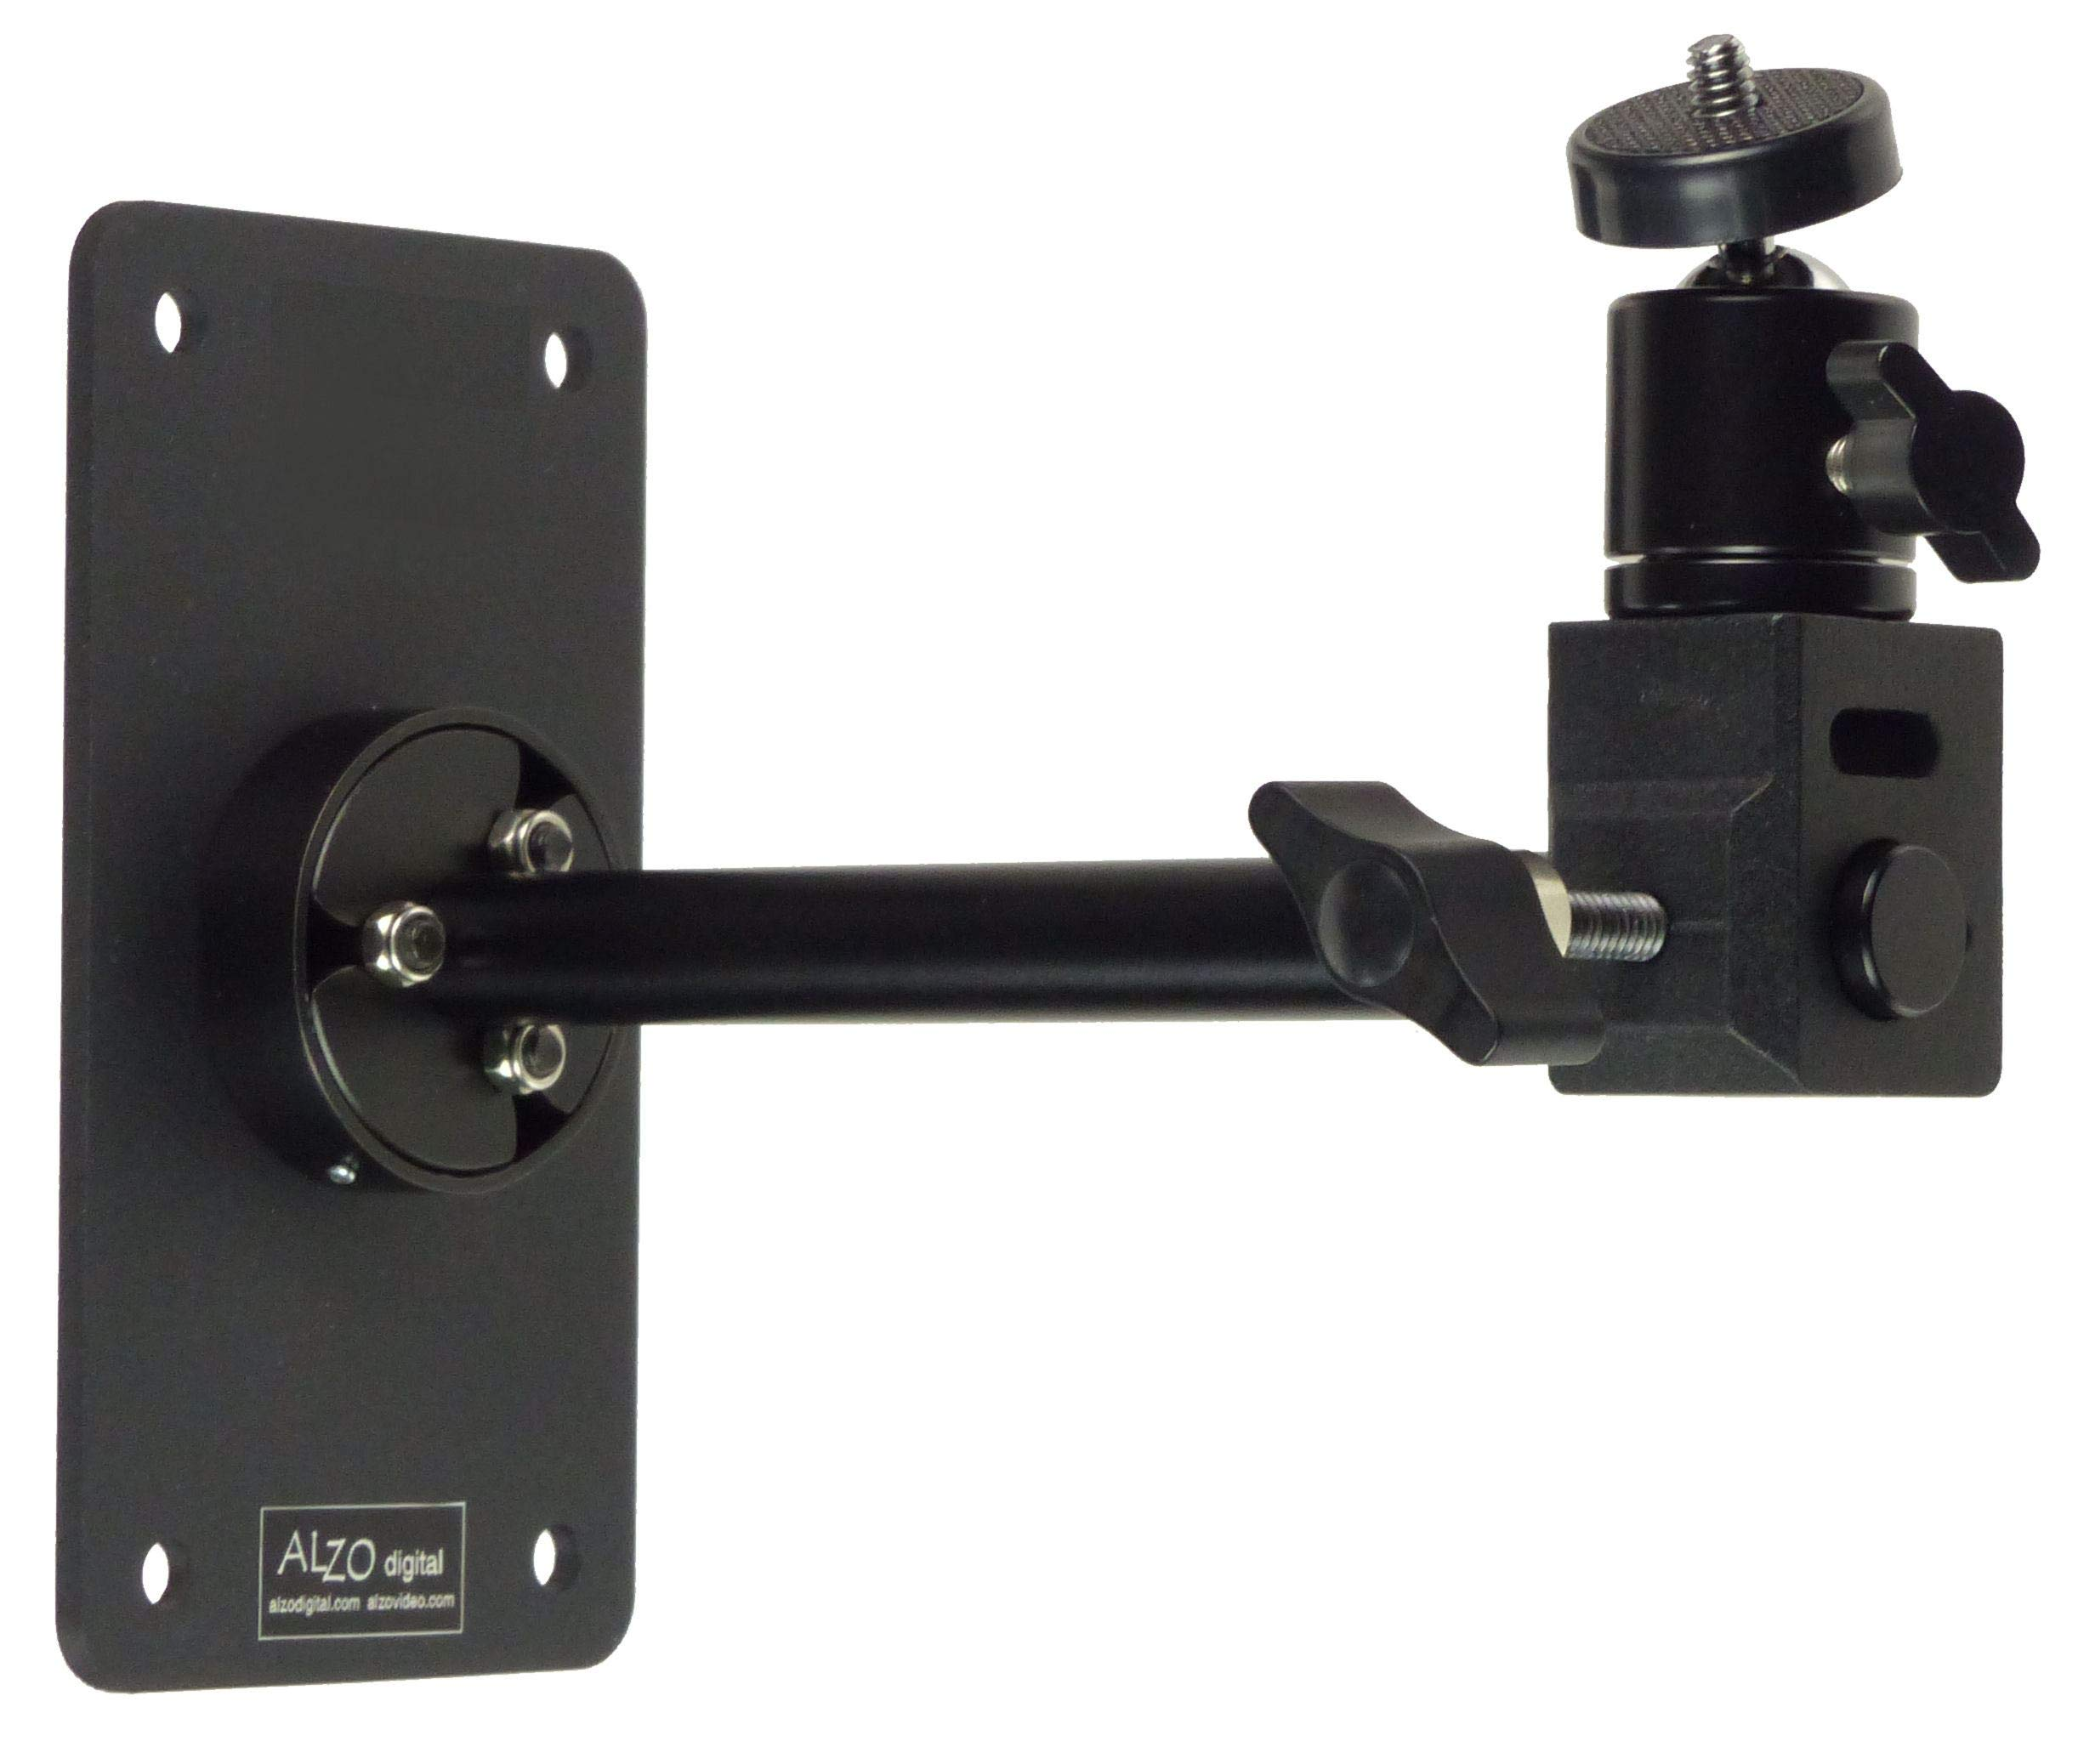 Wall-Mounted Camera Support with Ball Head by ALZO digital